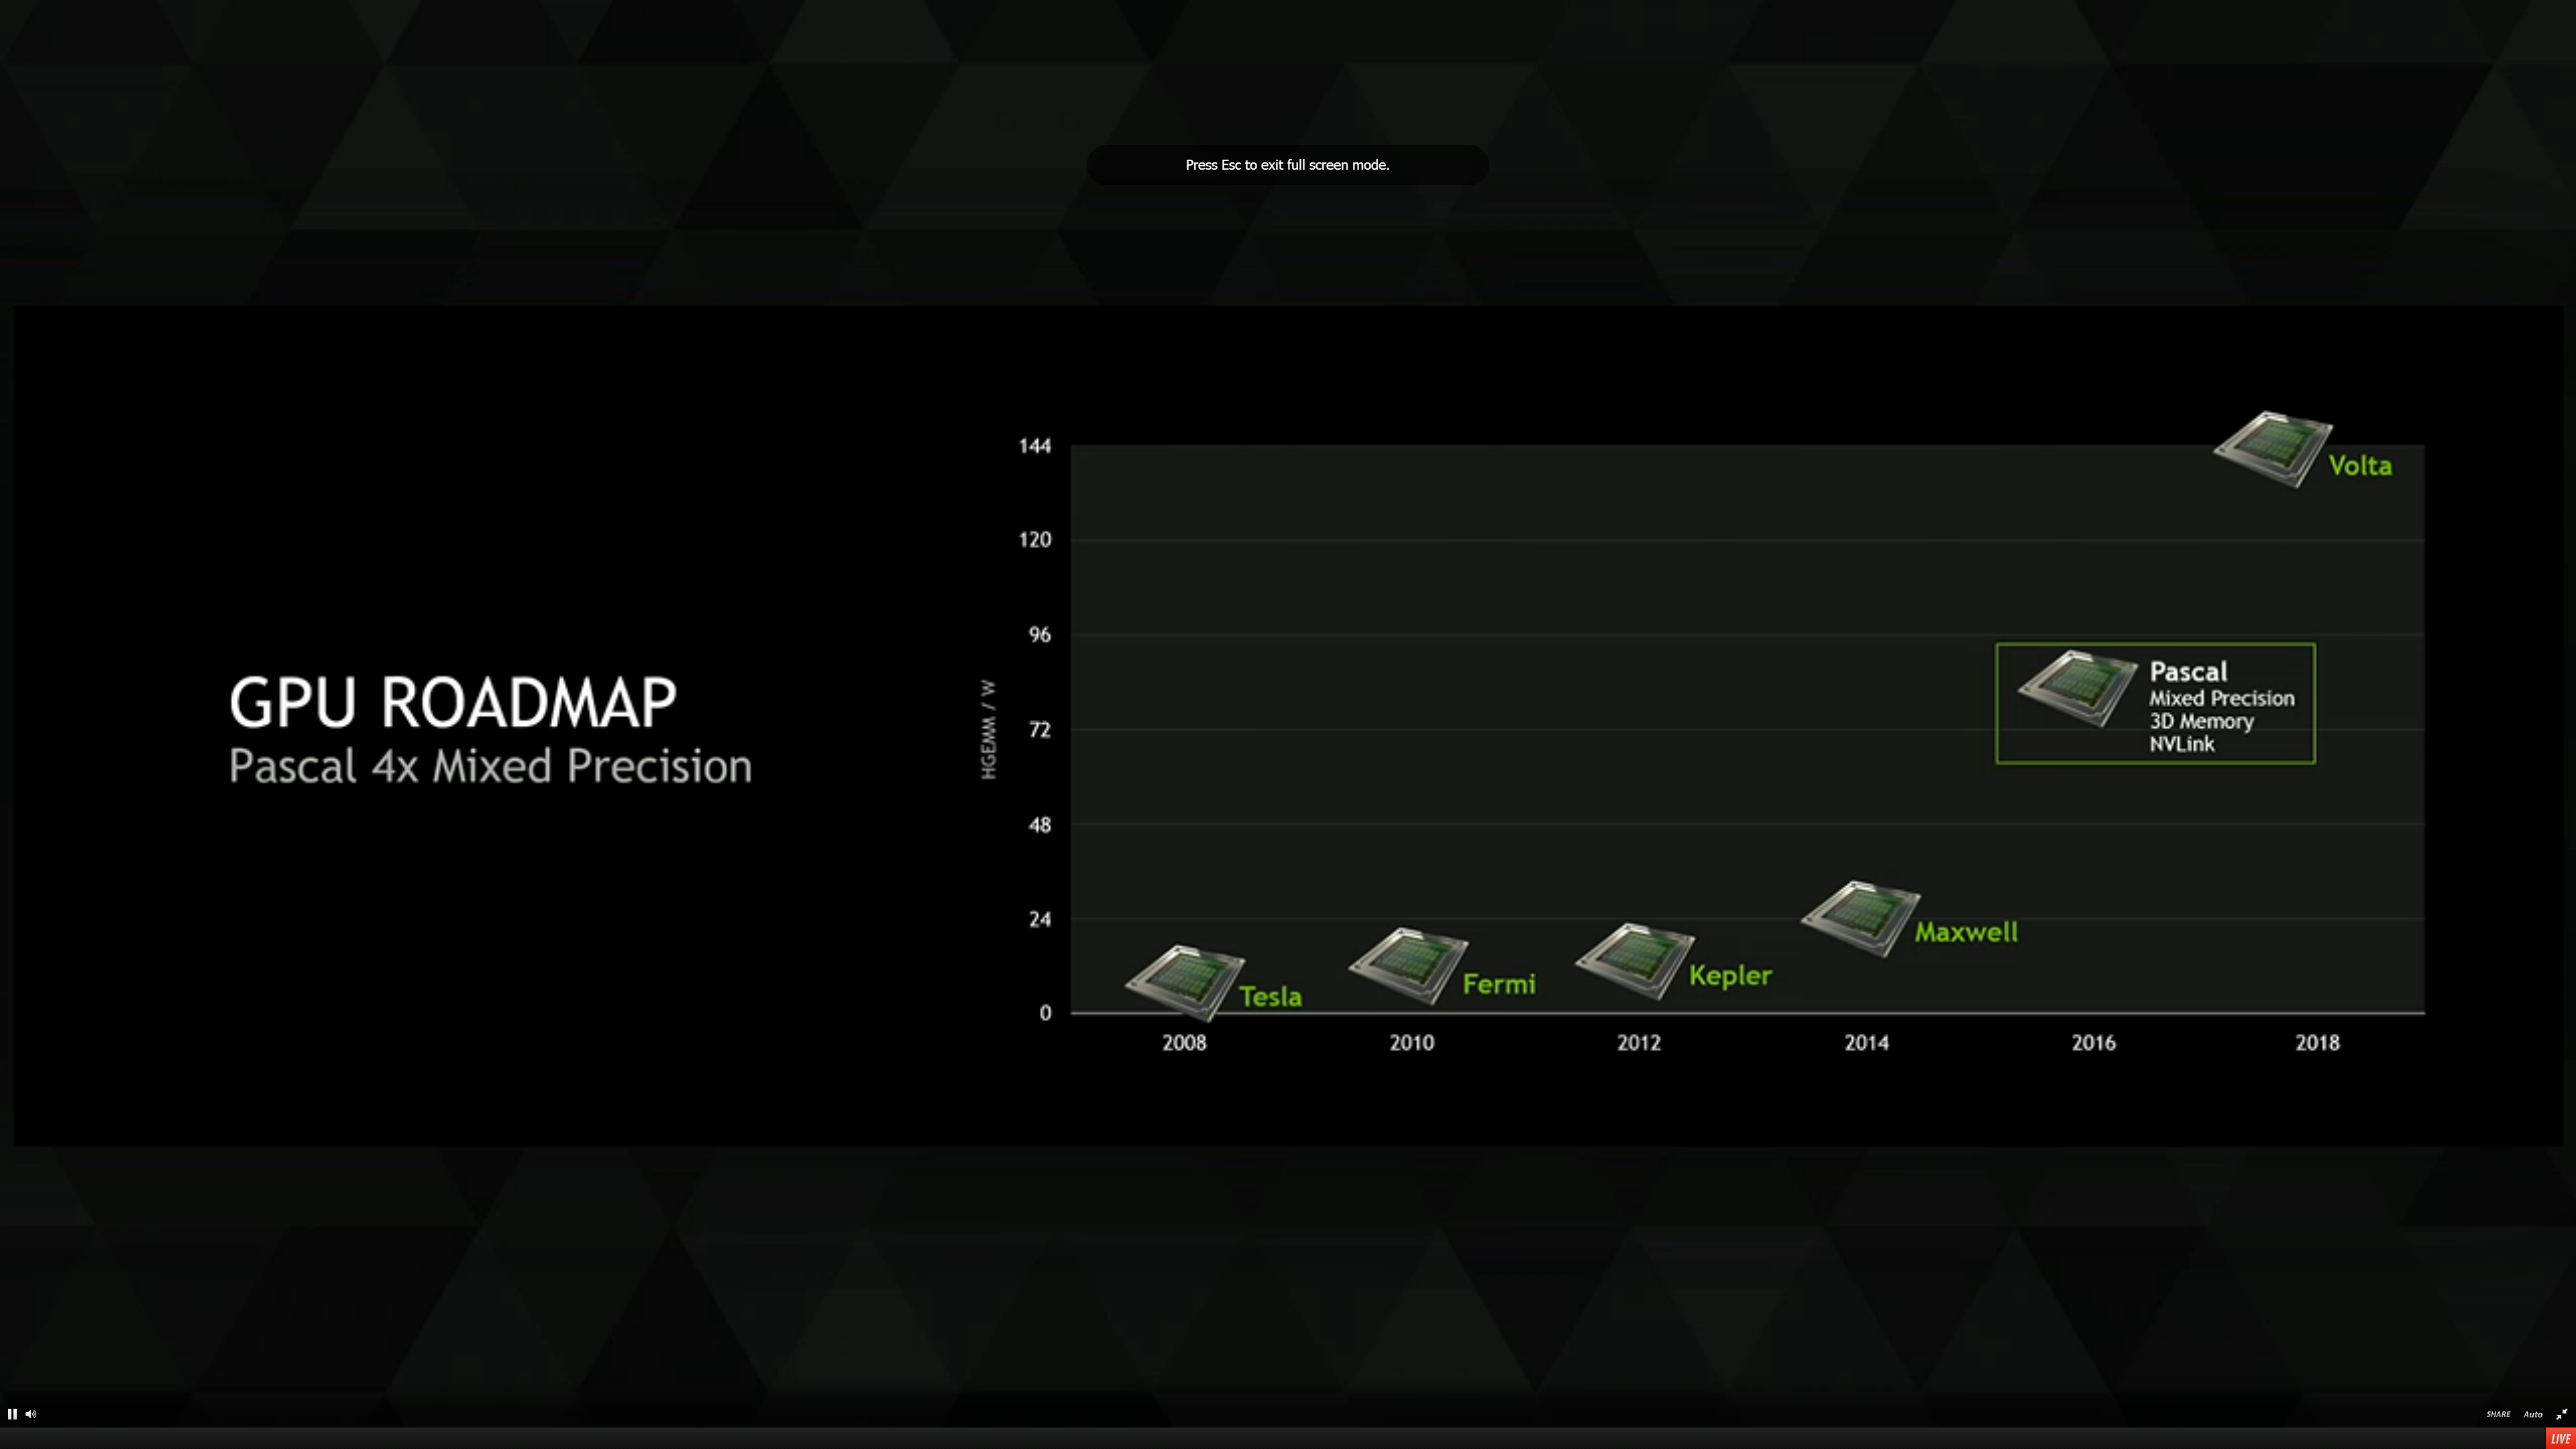 Nvidia : Pascal Is 10x Faster Than Maxwell, Launching in